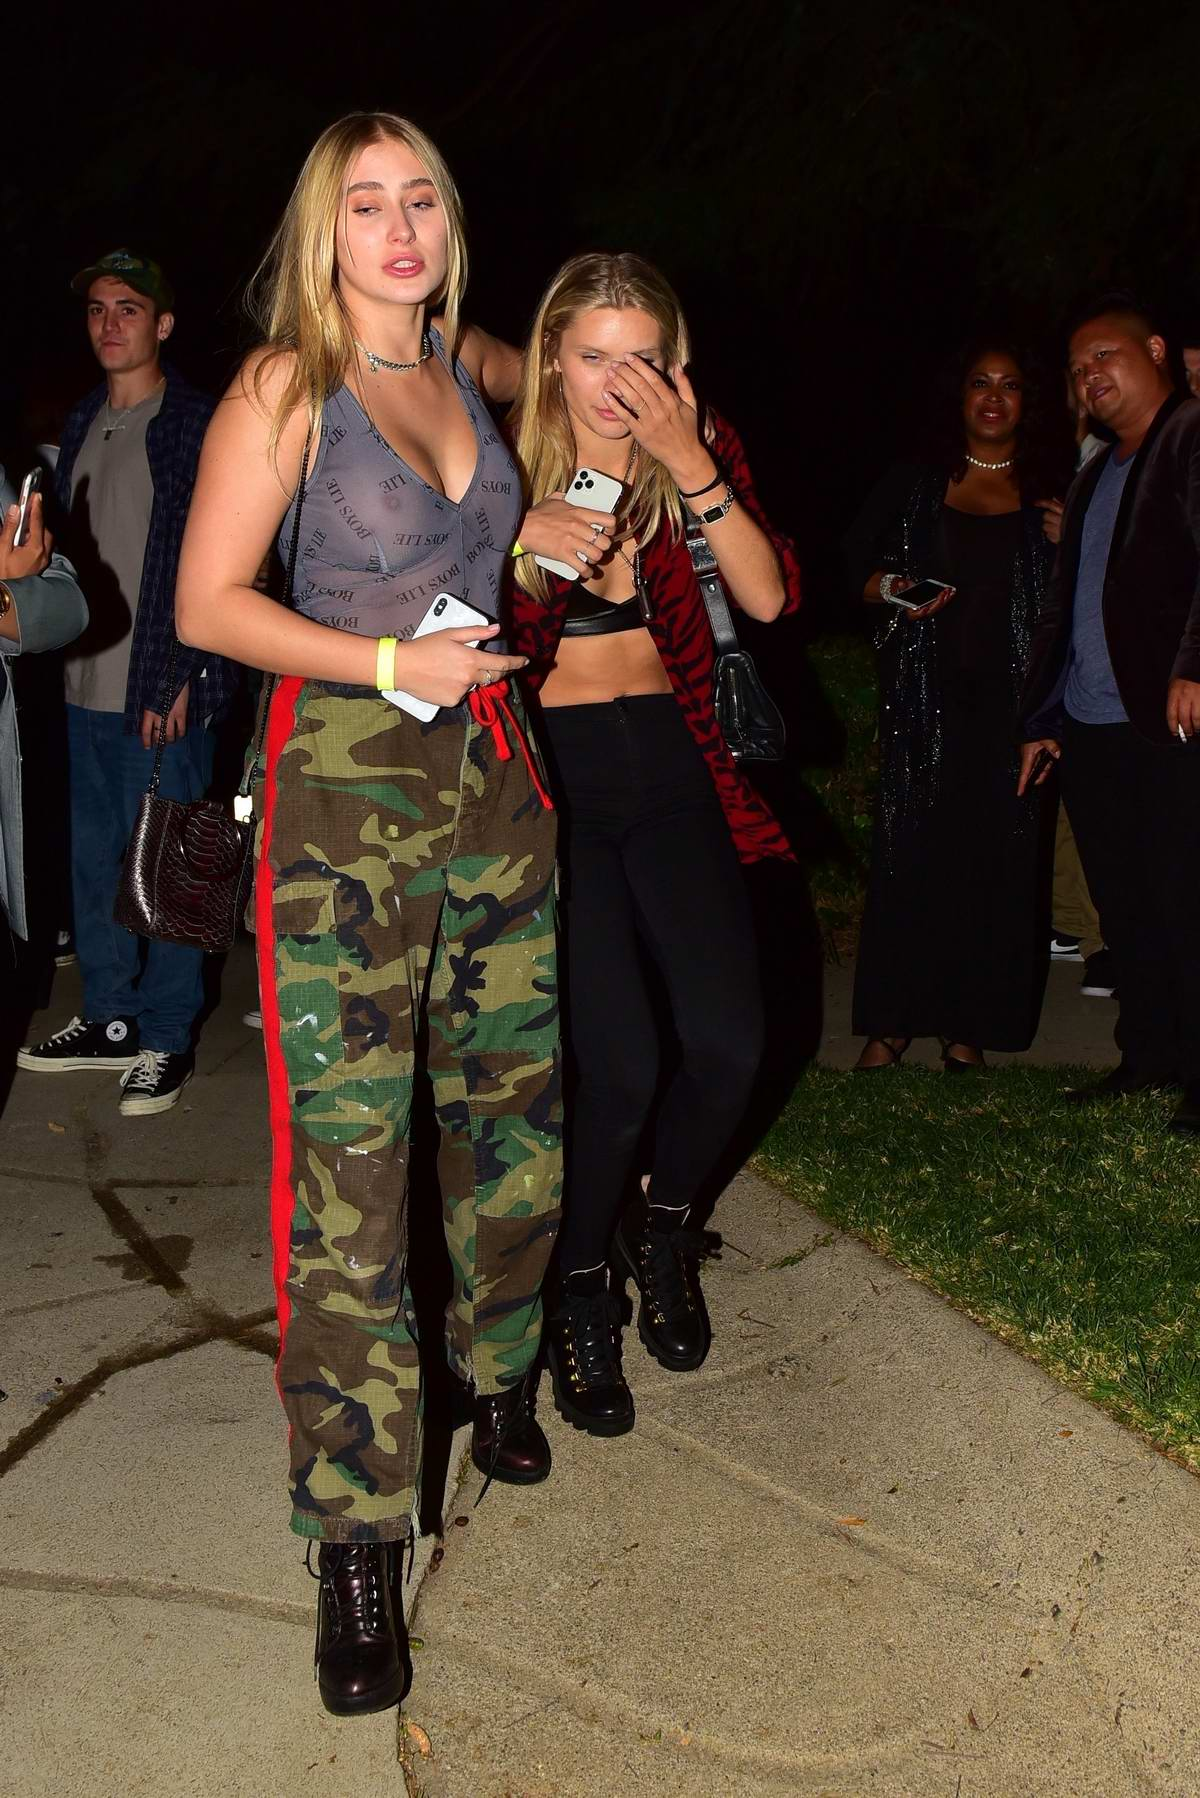 Josie Canseco looked a bit tipsy as she left the Mansion Party with a friend in Beverly Hills, Los Angeles